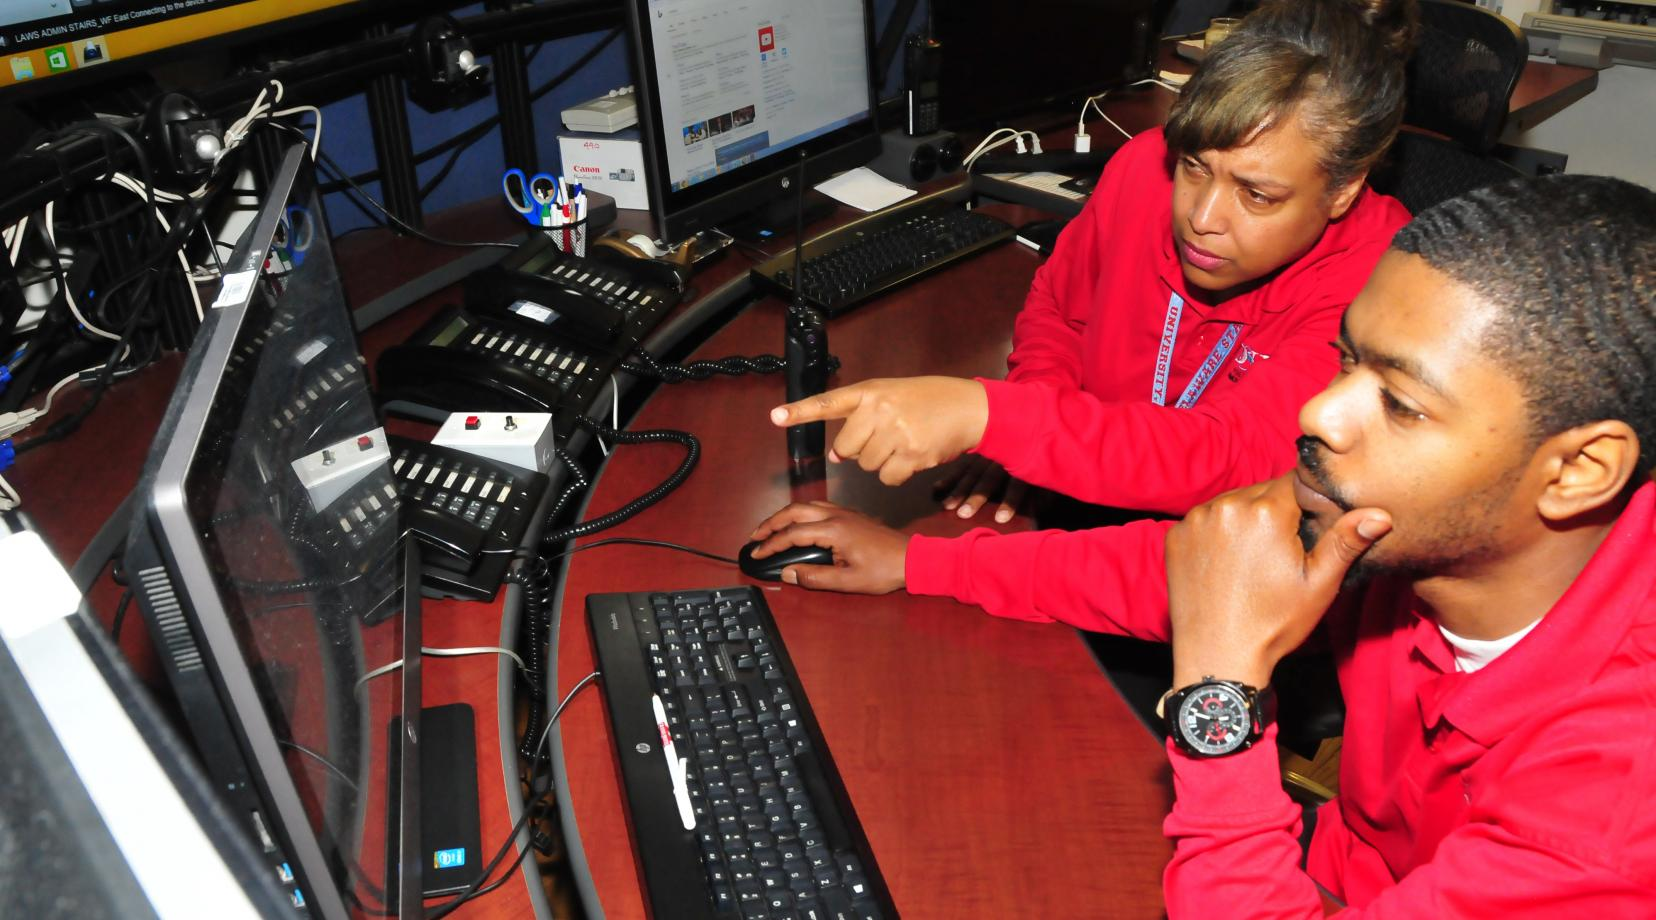 <p>DSU Police dispatchers Kimberley Wood and James Paige Jr. were among the dispatchers who were tested during the April 11 active shooter exercise on campus.</p>